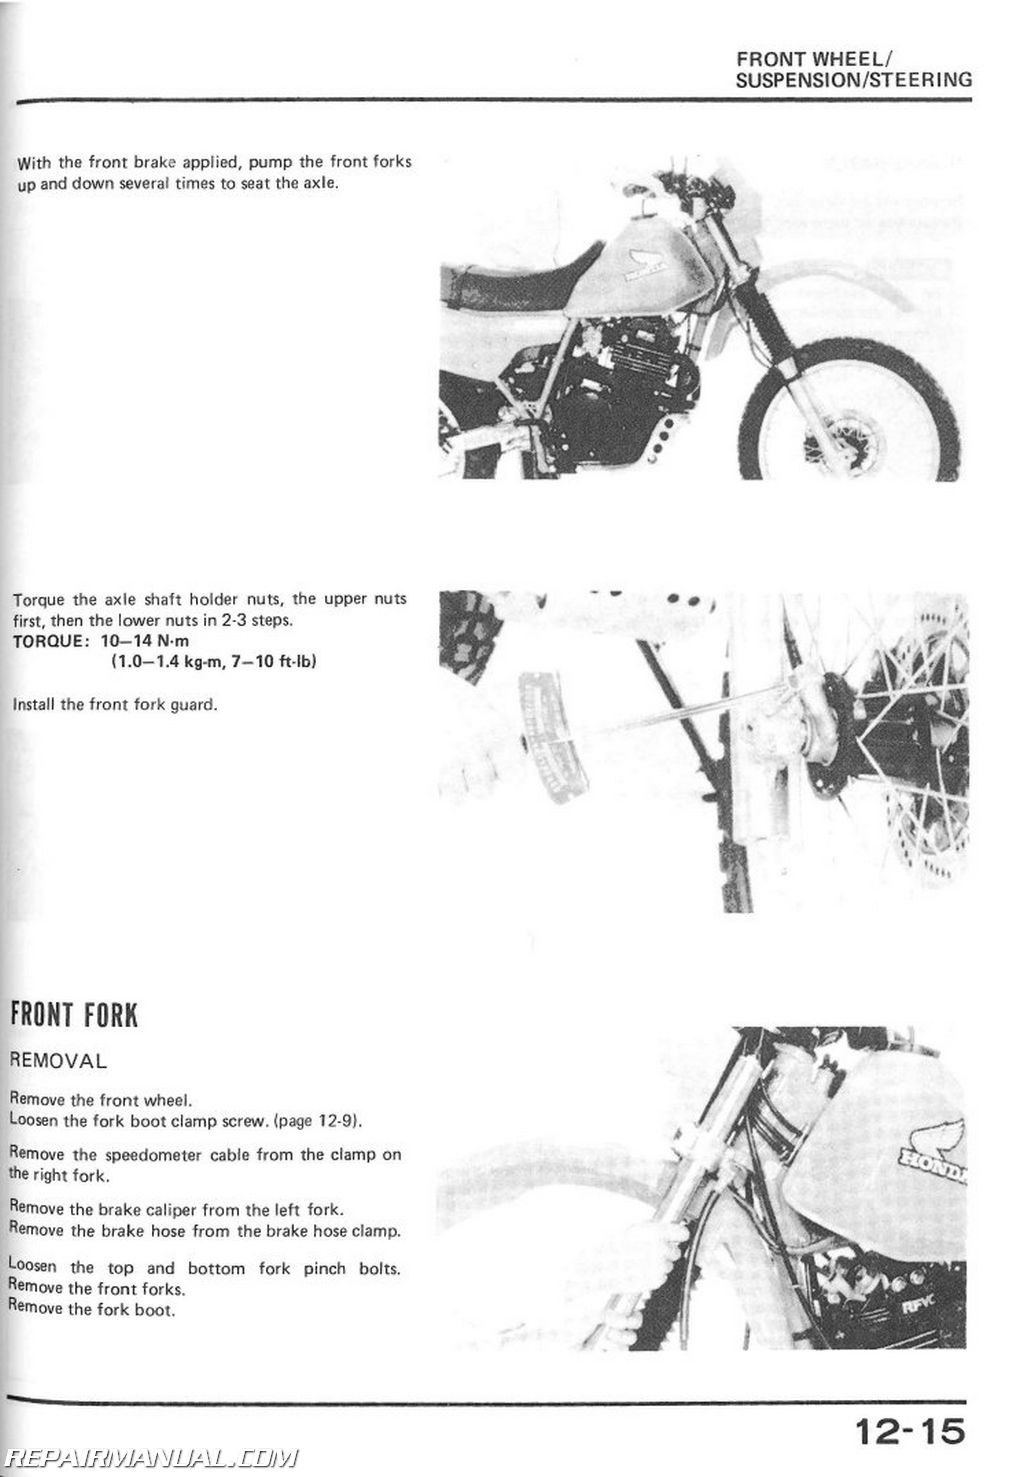 1983 Honda Xl 600 Parts Diagram Get Free Image About Wiring Alesis Al1101 Ad Converter Z2 75 110 Integrated Circuit Replacement 1987 Xl600r Dual Sport Motorcycle Service Manual Rh Repairmanual Com